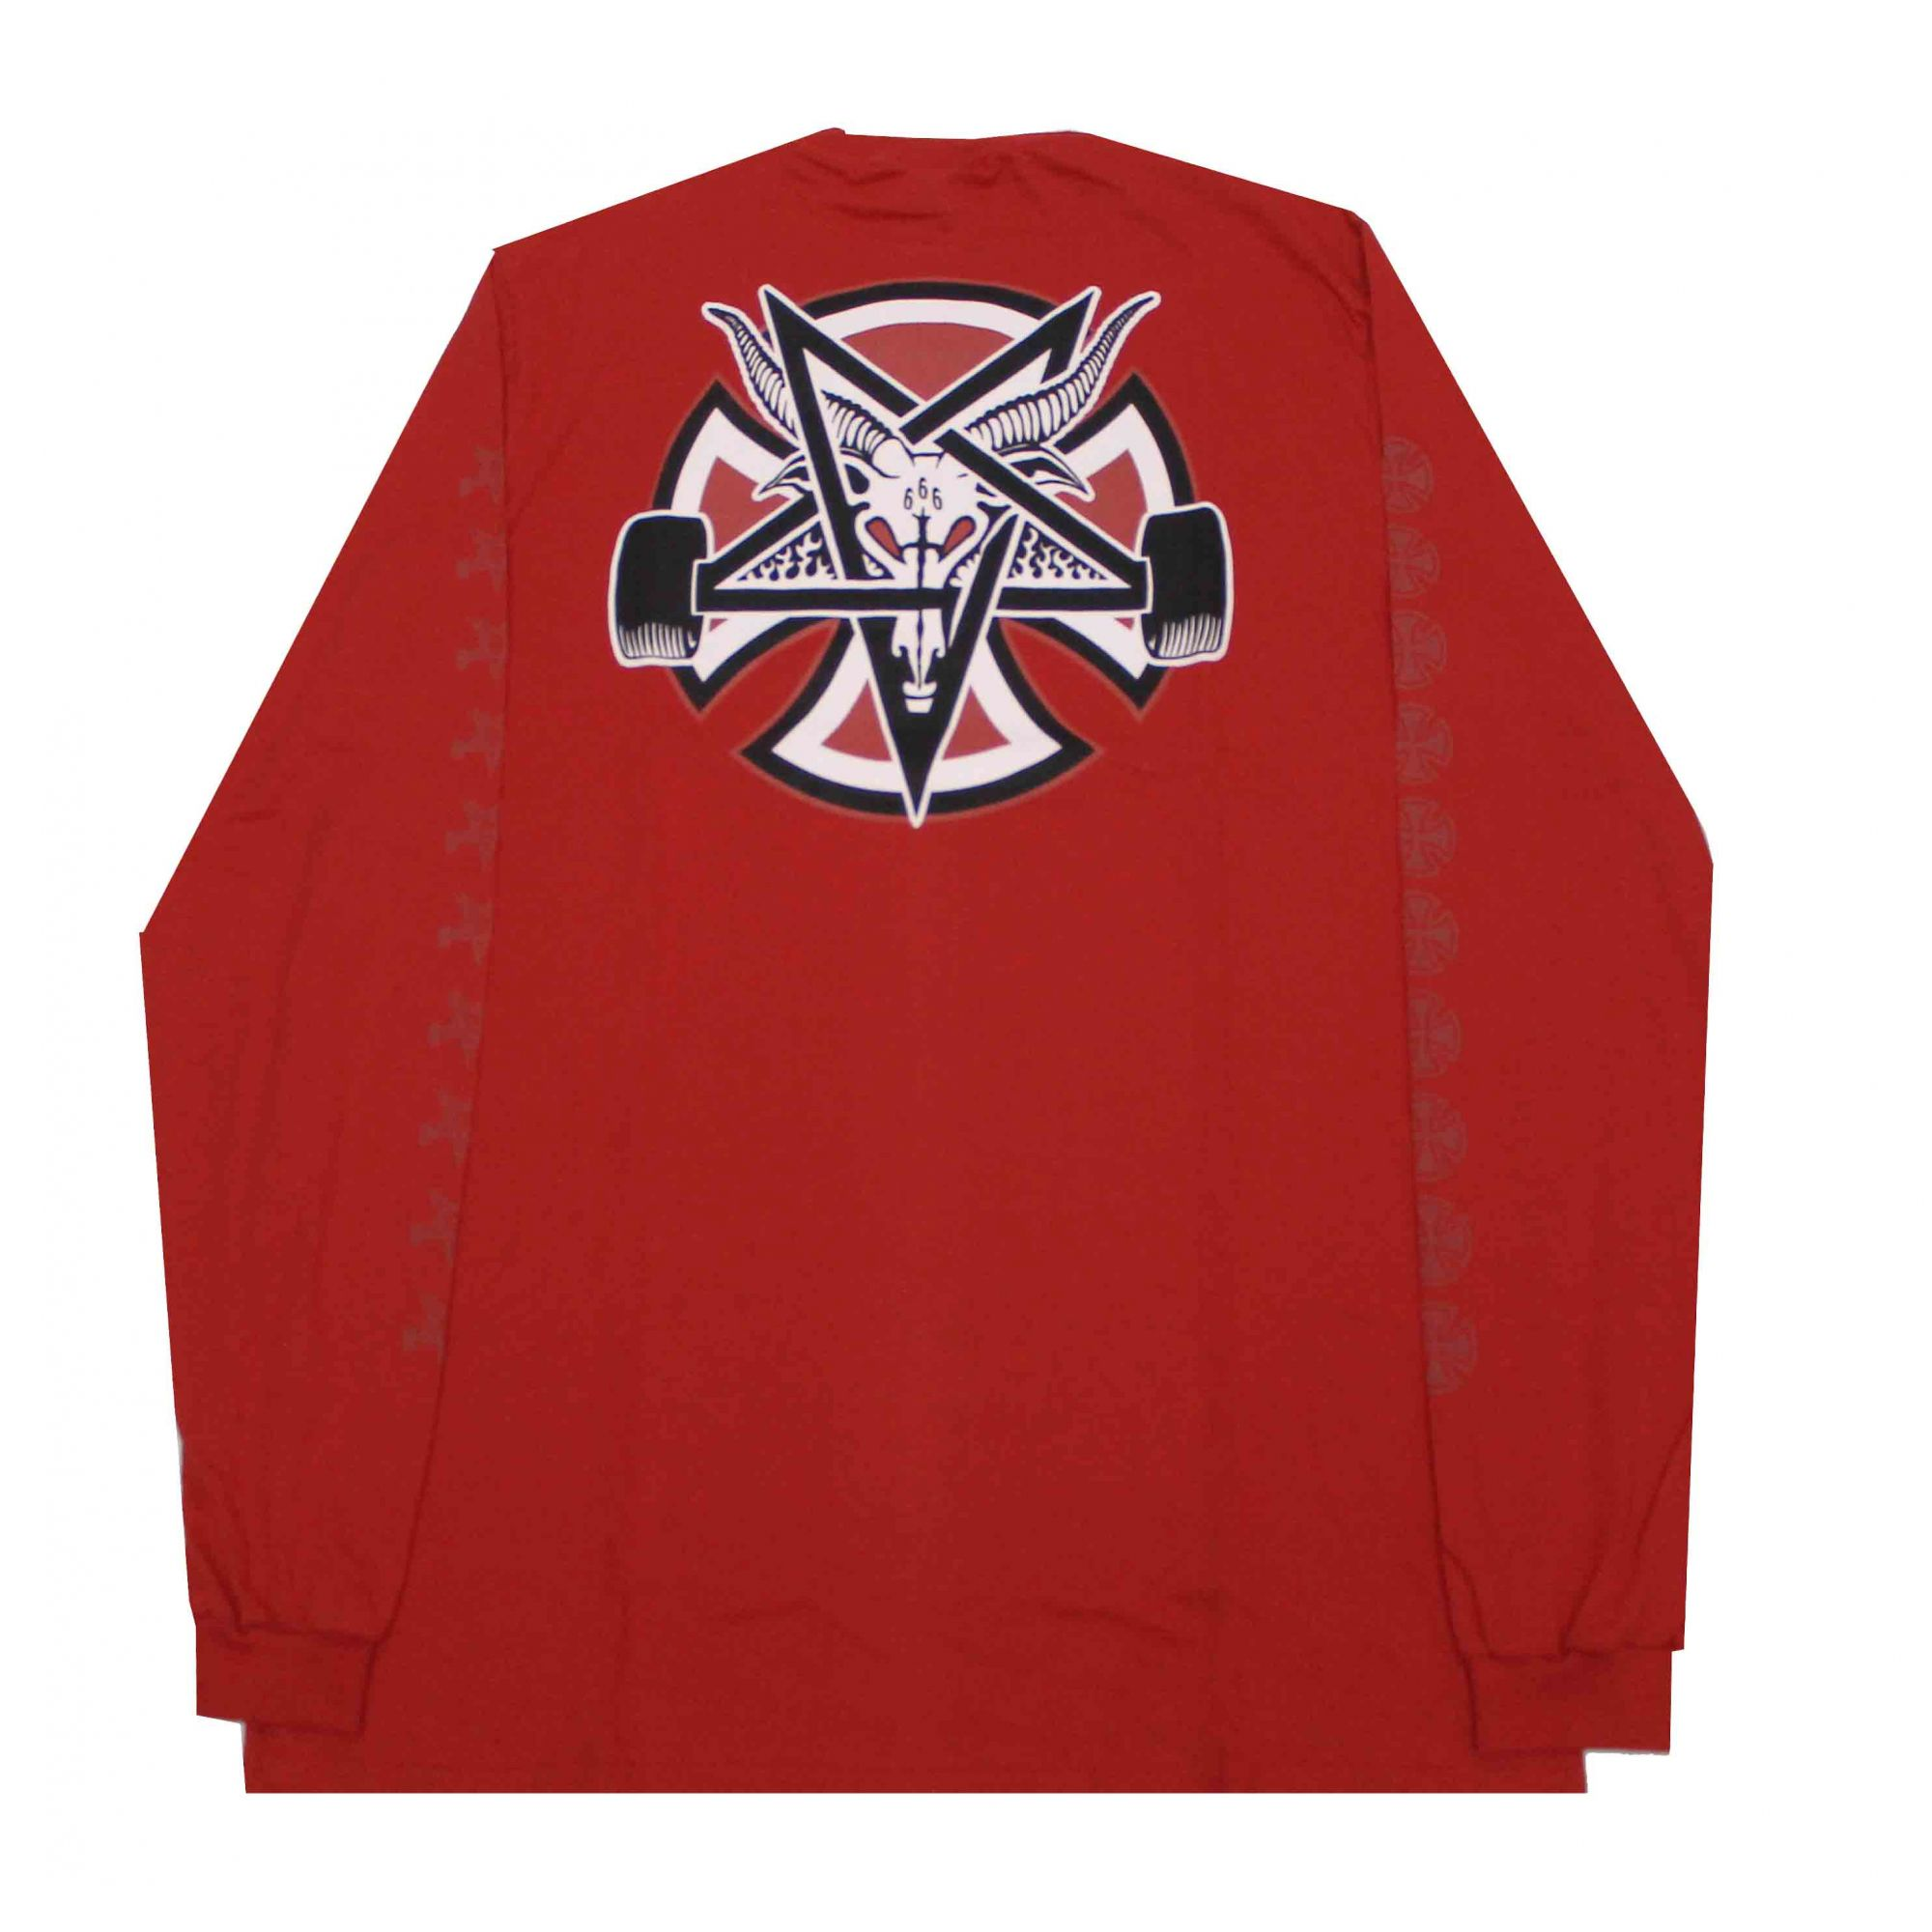 Camiseta Manga Longa Thrasher Magazine x Independent Pentagram Cross Red